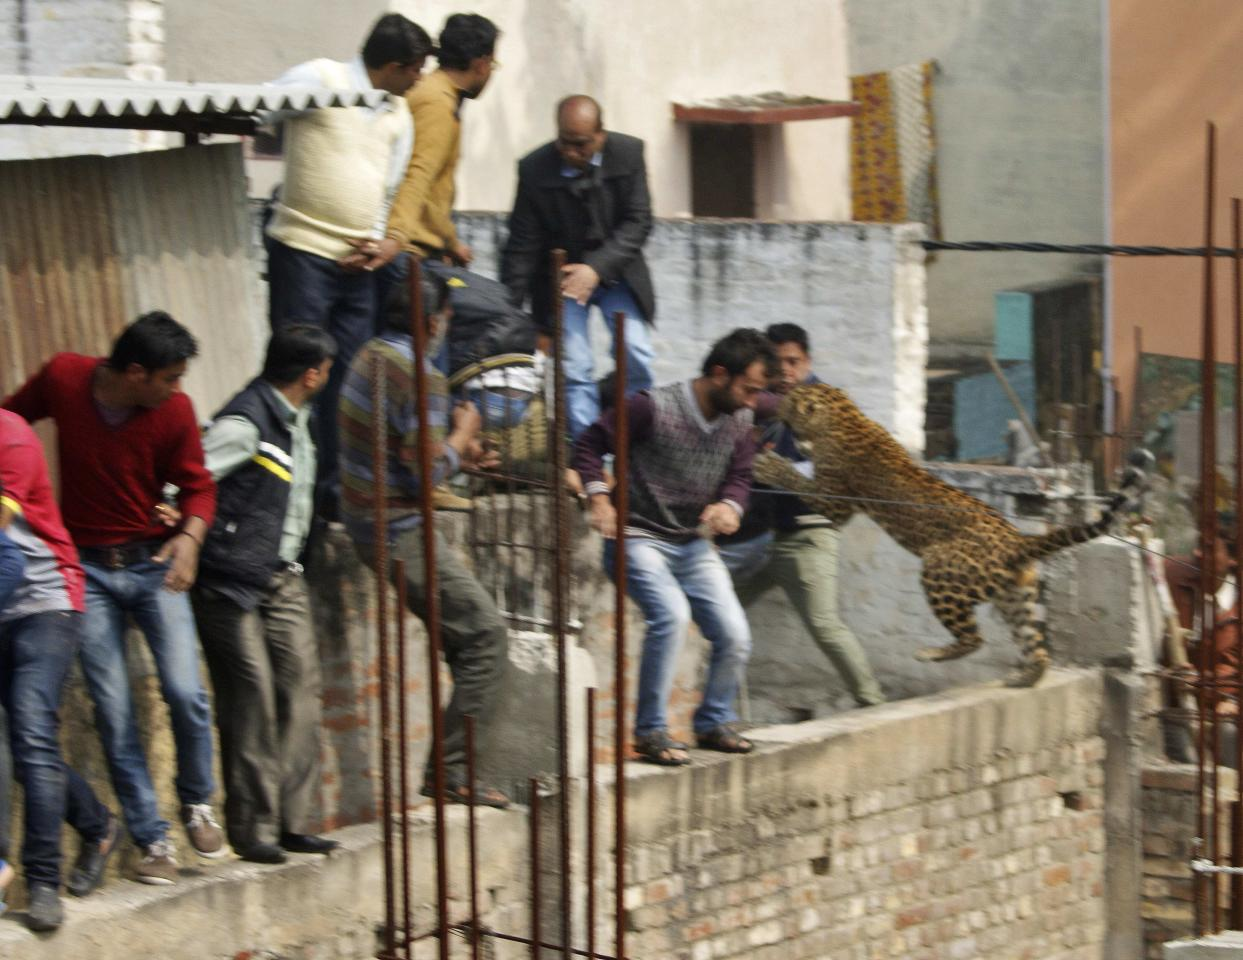 A leopard jumps at people at a structure undergoing construction at a residential area in Meerut, in the northern Indian state of Uttar Pradesh February 23, 2014. Schools and shops were closed after seven people were injured by the leopard at the cantonment hospital in Meerut, local media reported. The leopard has evaded capture and is still at large. Picture taken February 23, 2014. REUTERS/Stringer (INDIA - Tags: ANIMALS DISASTER)